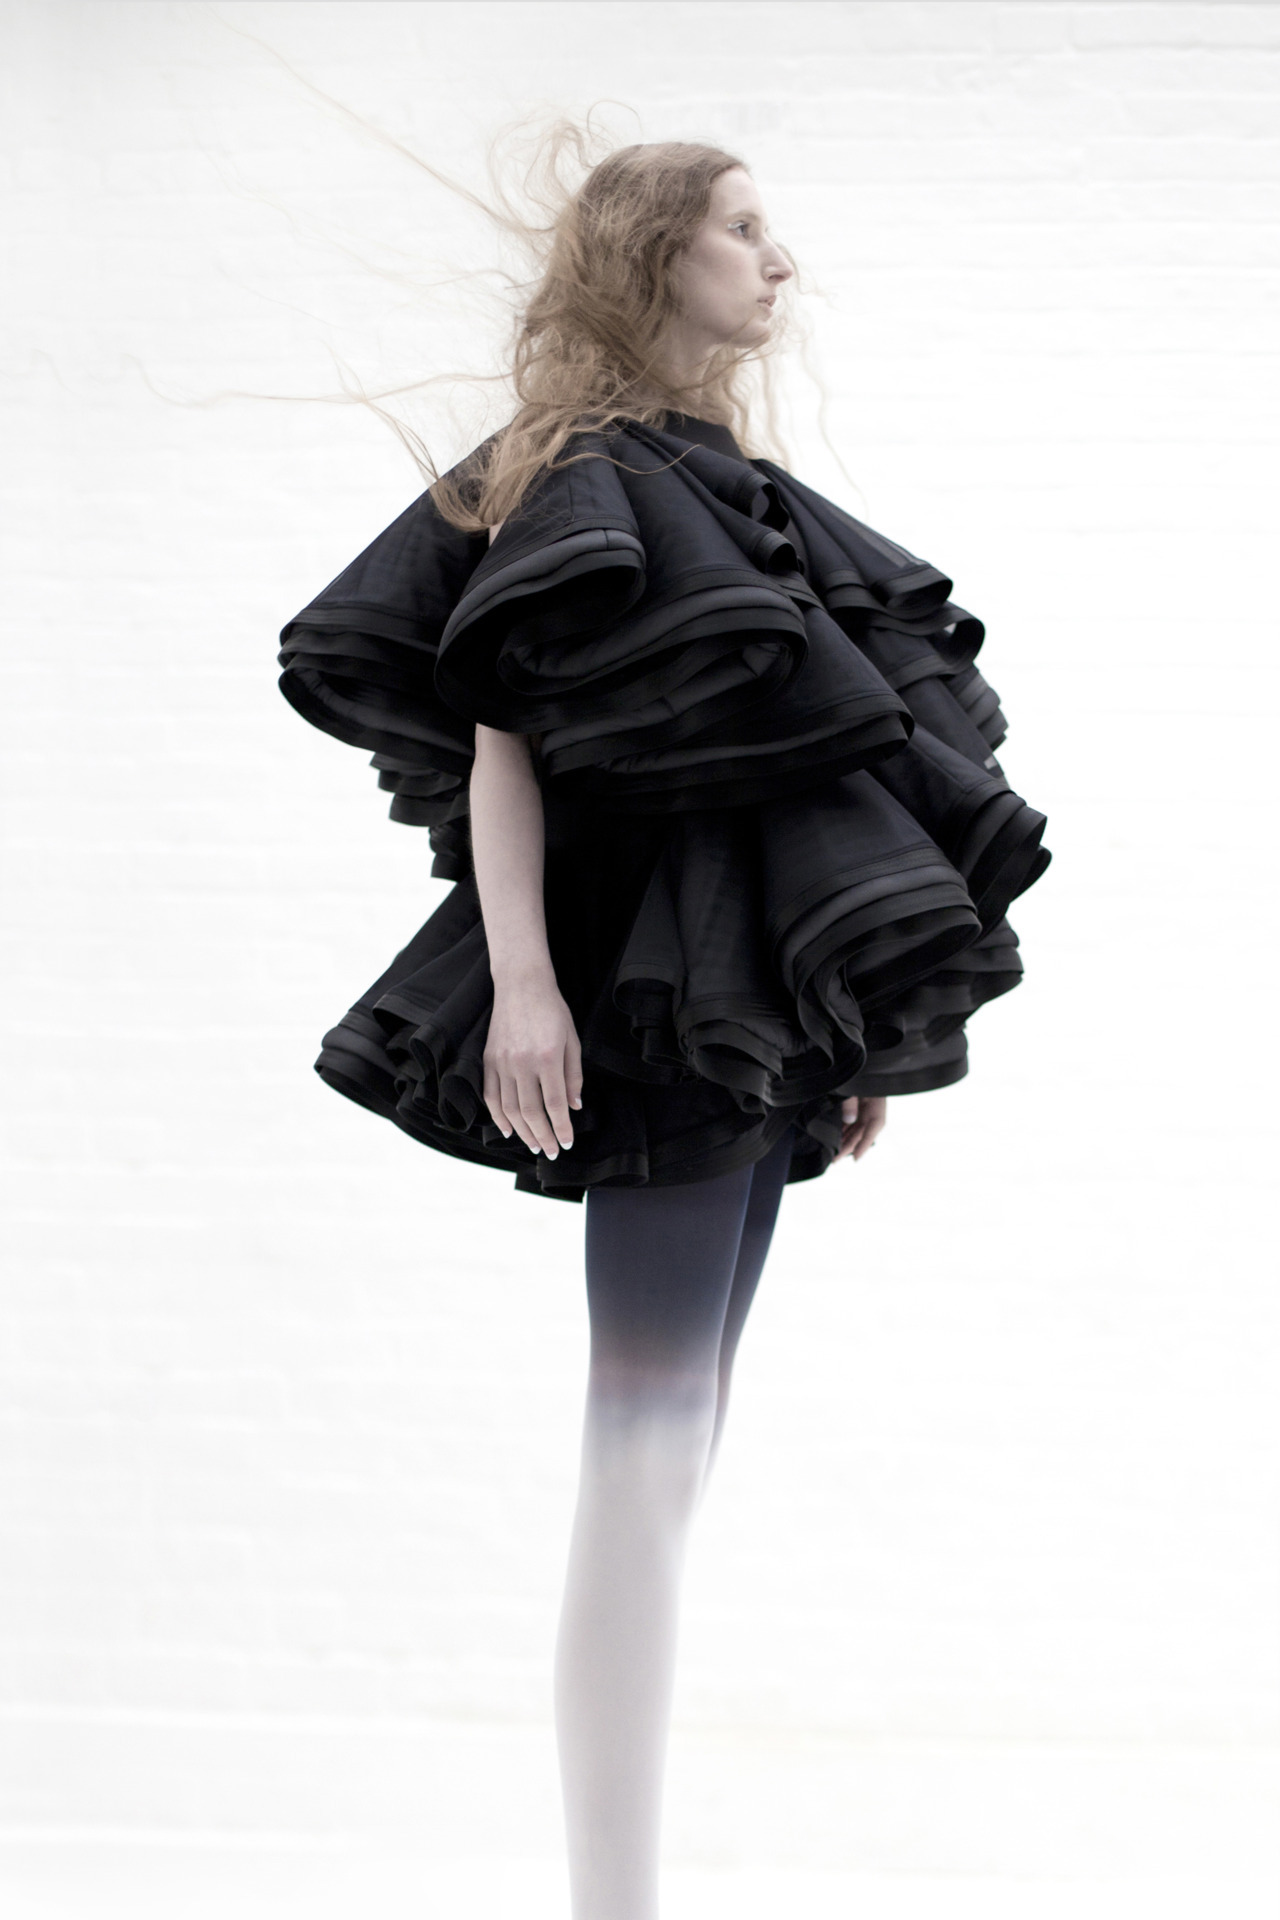 ' B u r n t ' by Robert Wun , Fashion, 2012